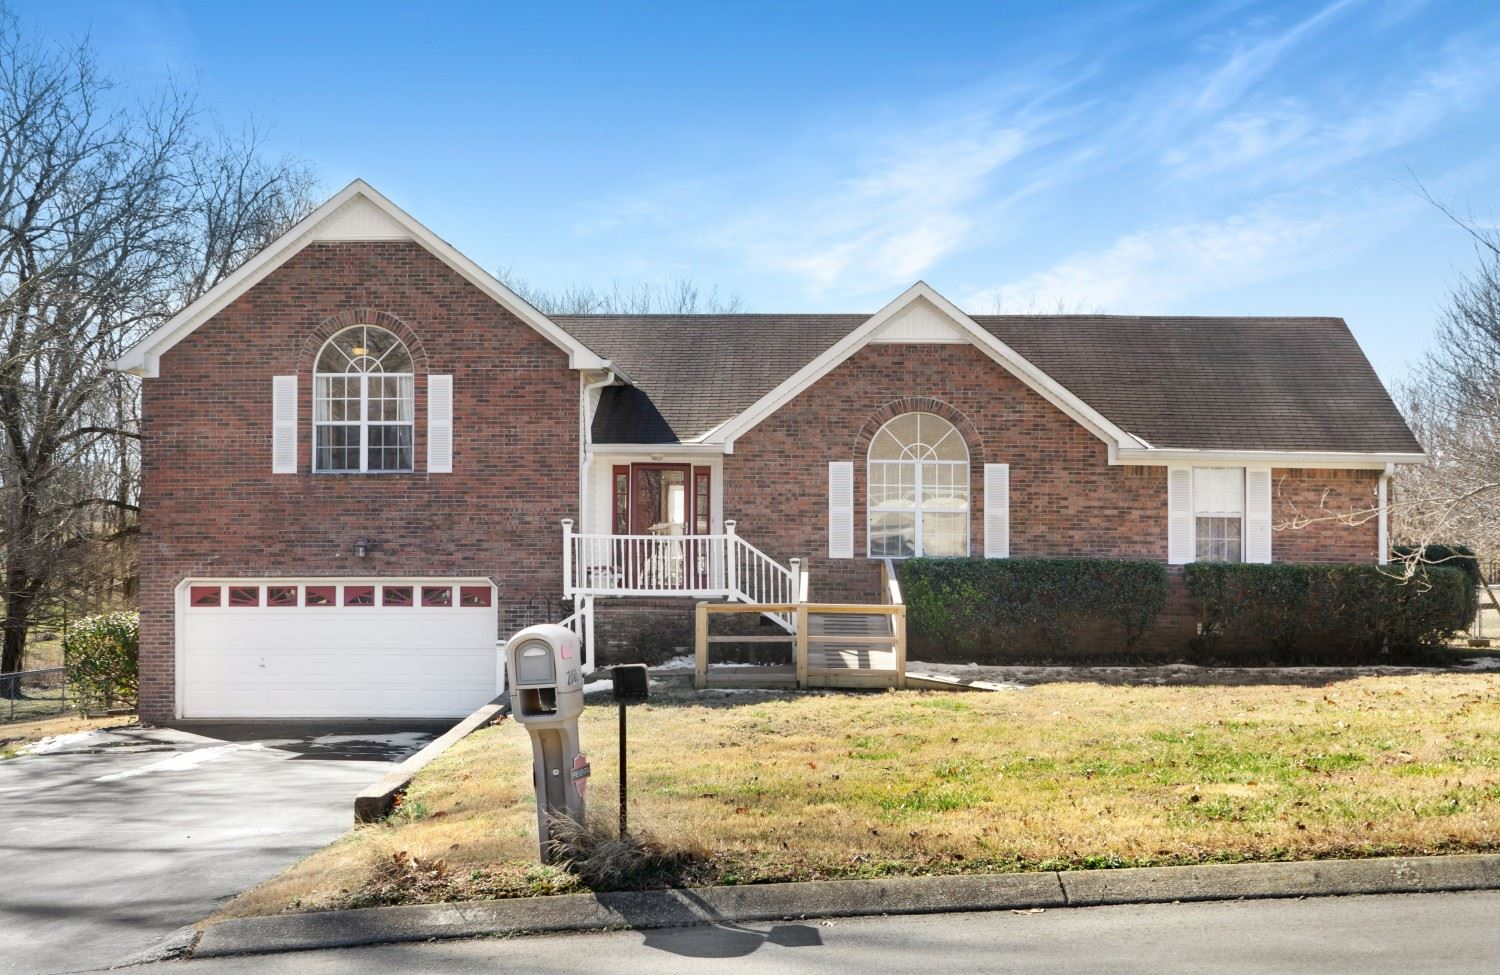 Photo of 2005 Big Oak Dr, Spring Hill, TN 37174 (MLS # 2231178)